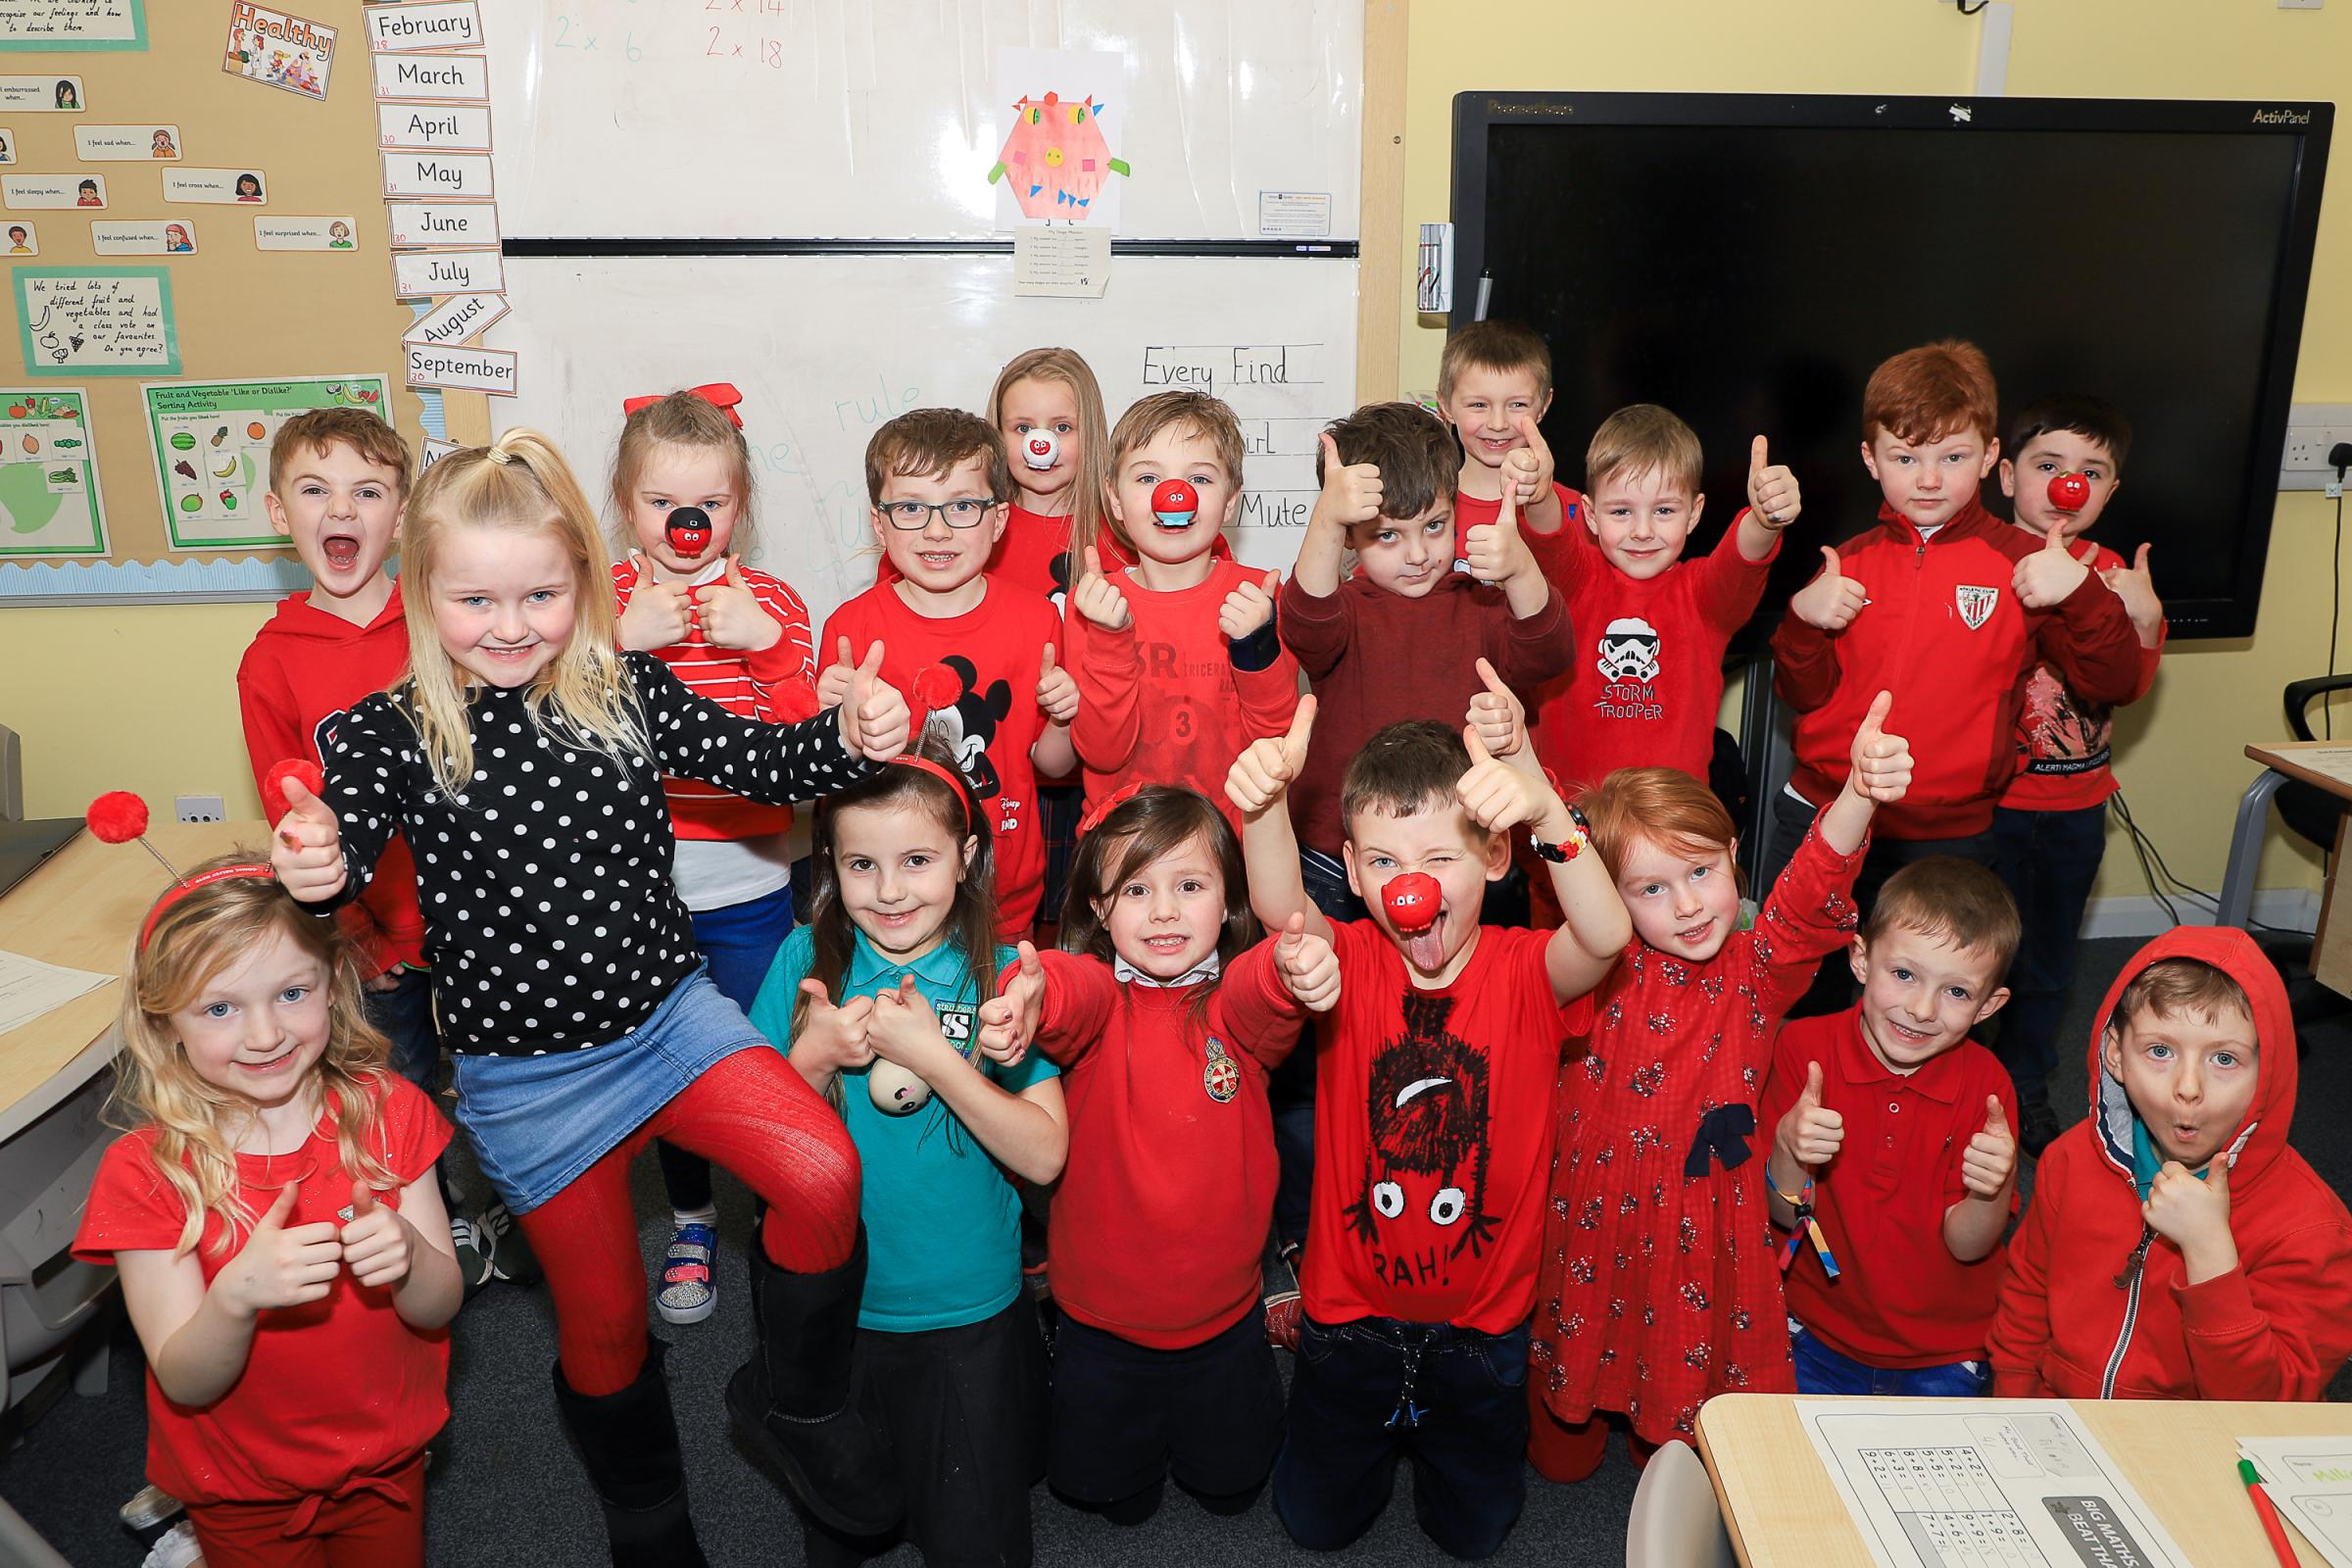 Struthers Primary pupils enjoy Red Nose day